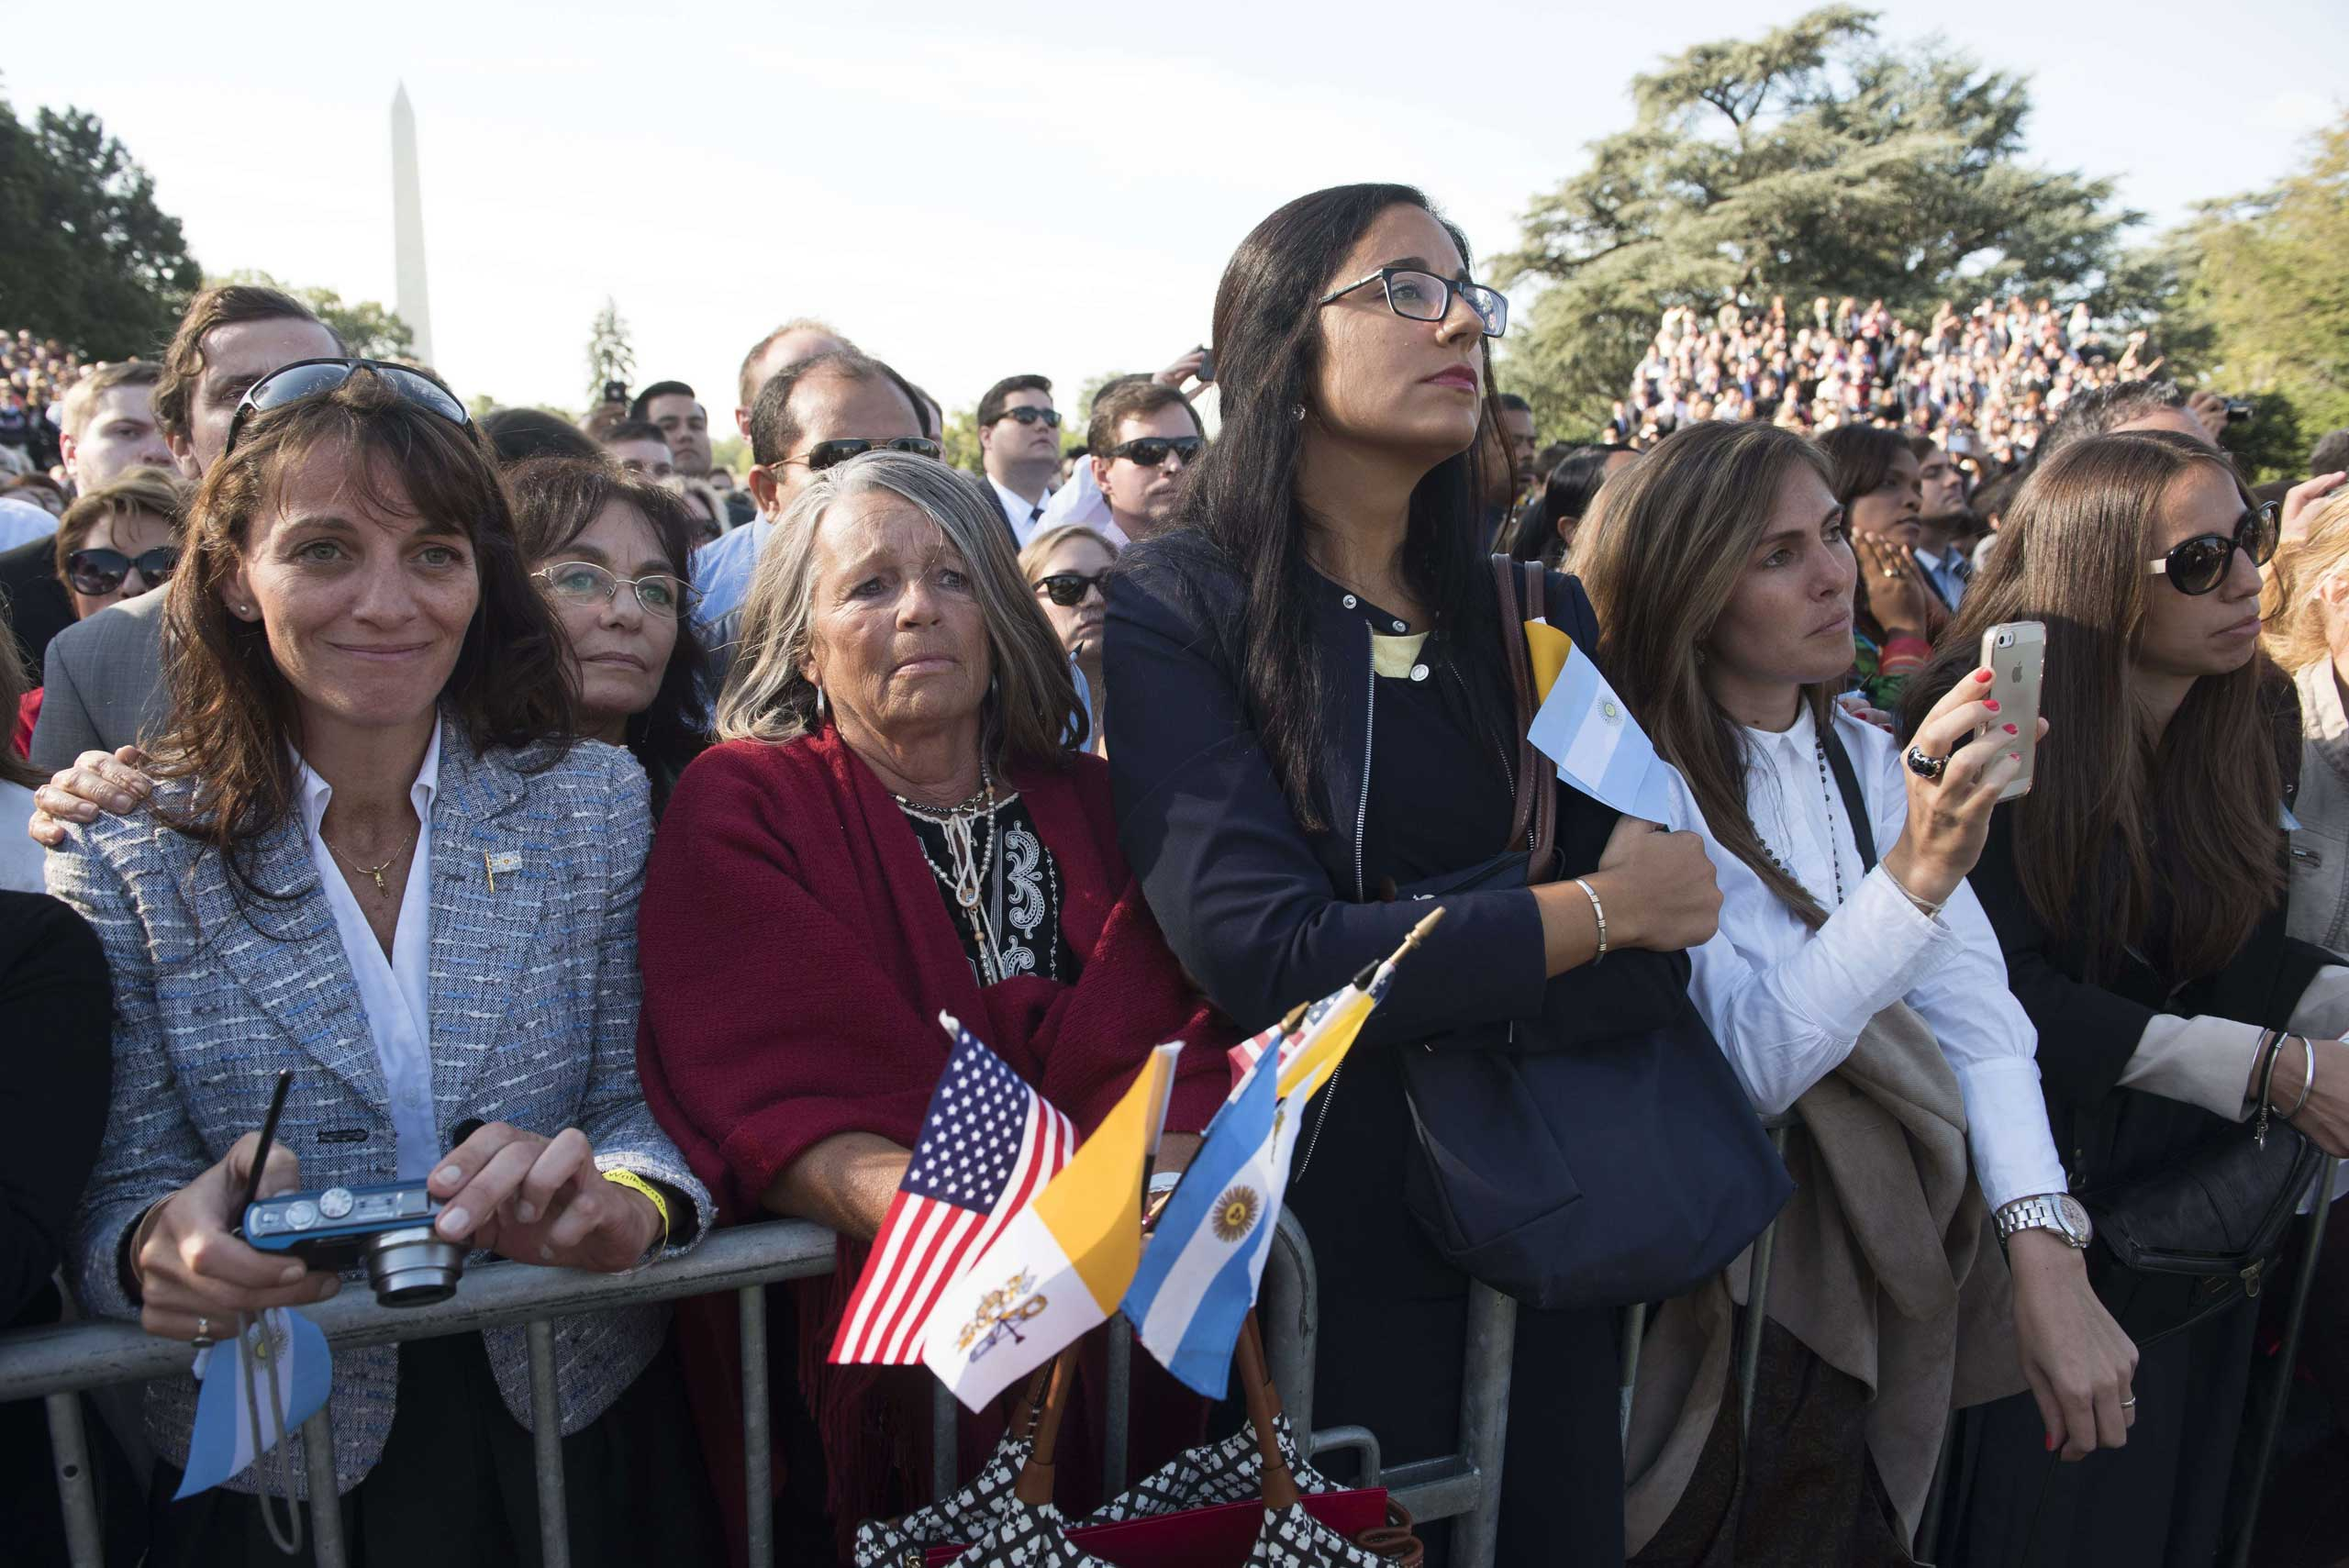 Guests watch as President Barack Obama greets Pope Francis during an arrival ceremony on the South Lawn of the White House in Washington, on Sept. 23, 2015.